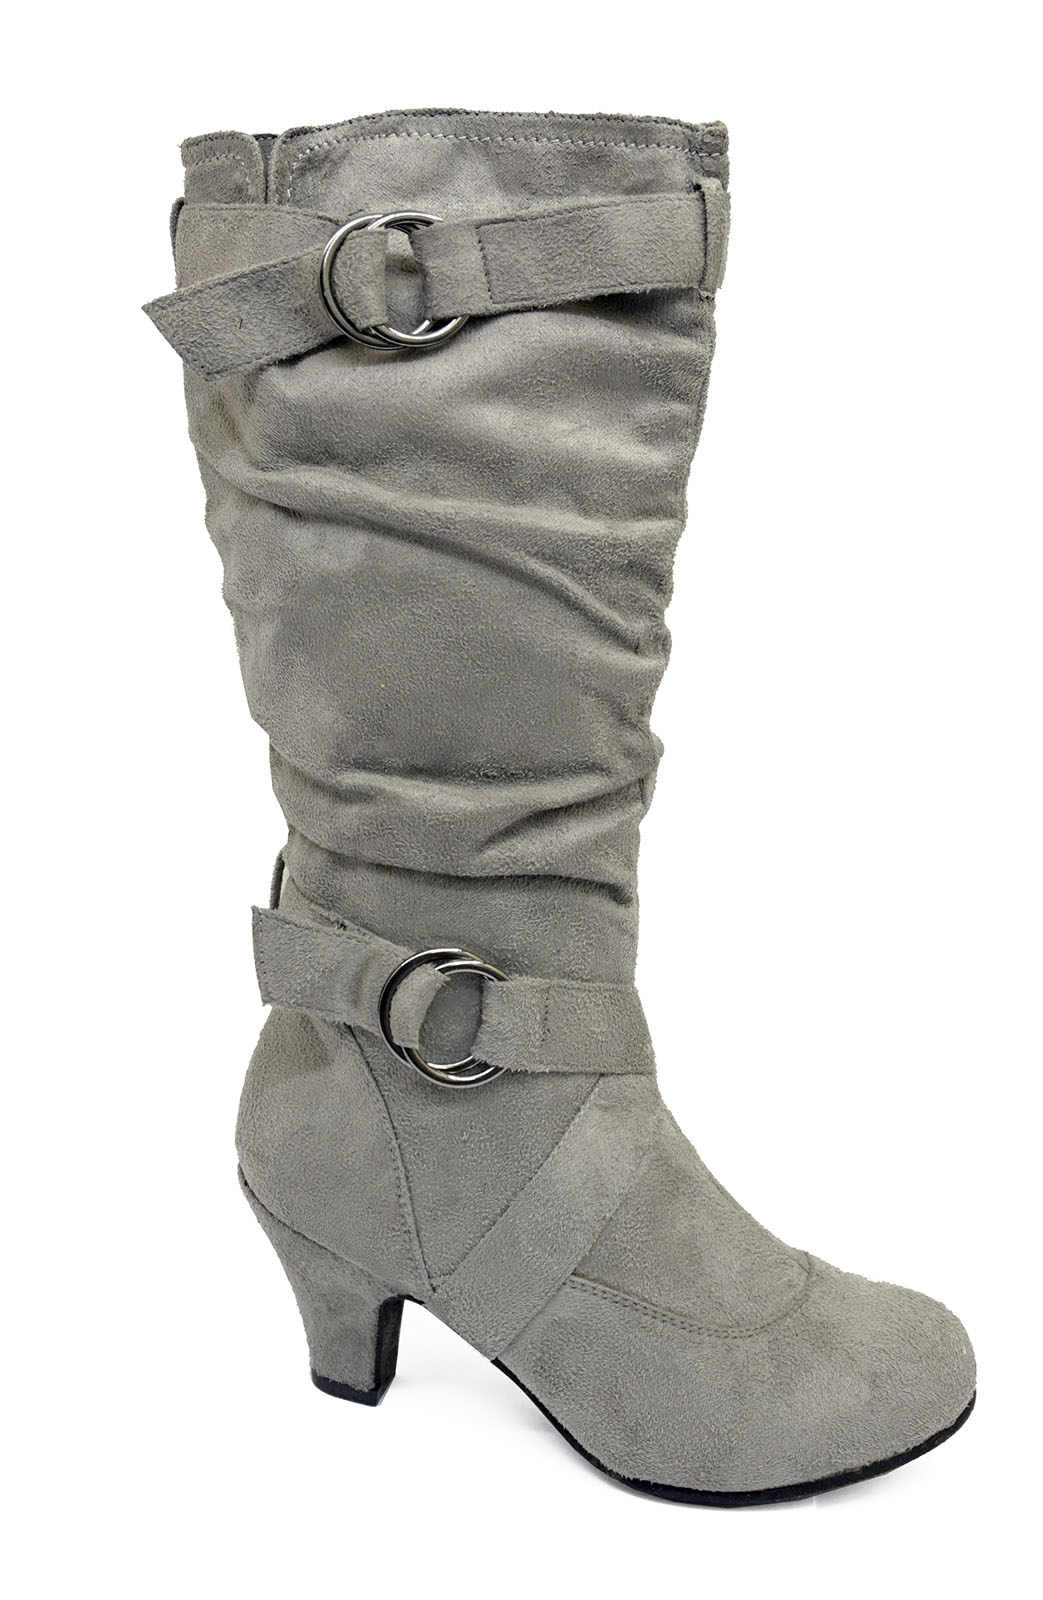 LADIES-GREY-ZIP-UP-BIKER-SLOUCH-RUCHED-TALL-KNEE-CALF-LOW-HEEL-BOOTS-SHOES-4-10 thumbnail 8